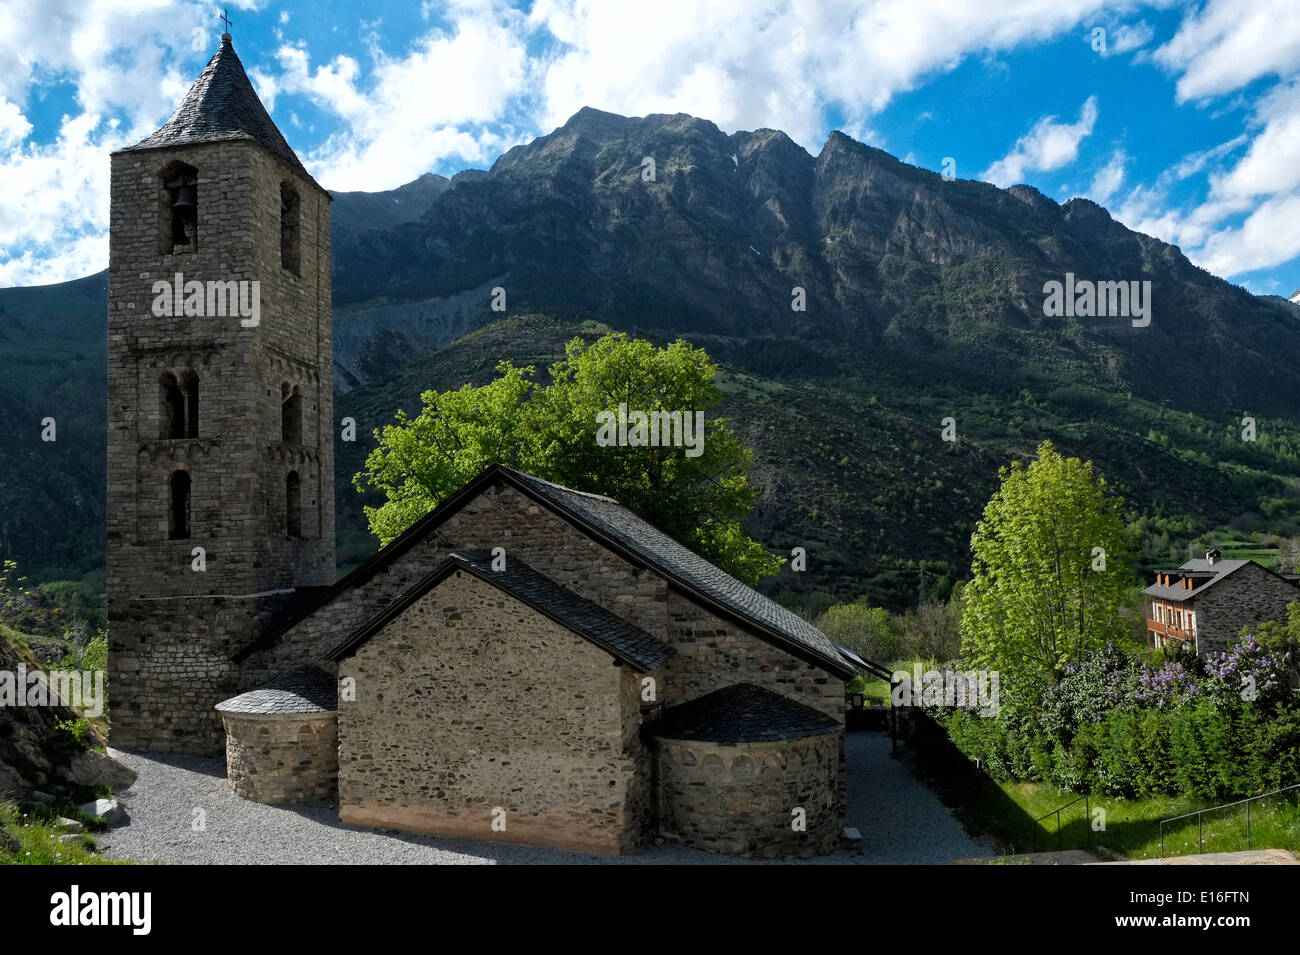 Exterior view of the Catalan Romanesque Church of Sant Joan situated in Vall de Boi valley in the high Pyrenees Catalonia Spain - Stock Image